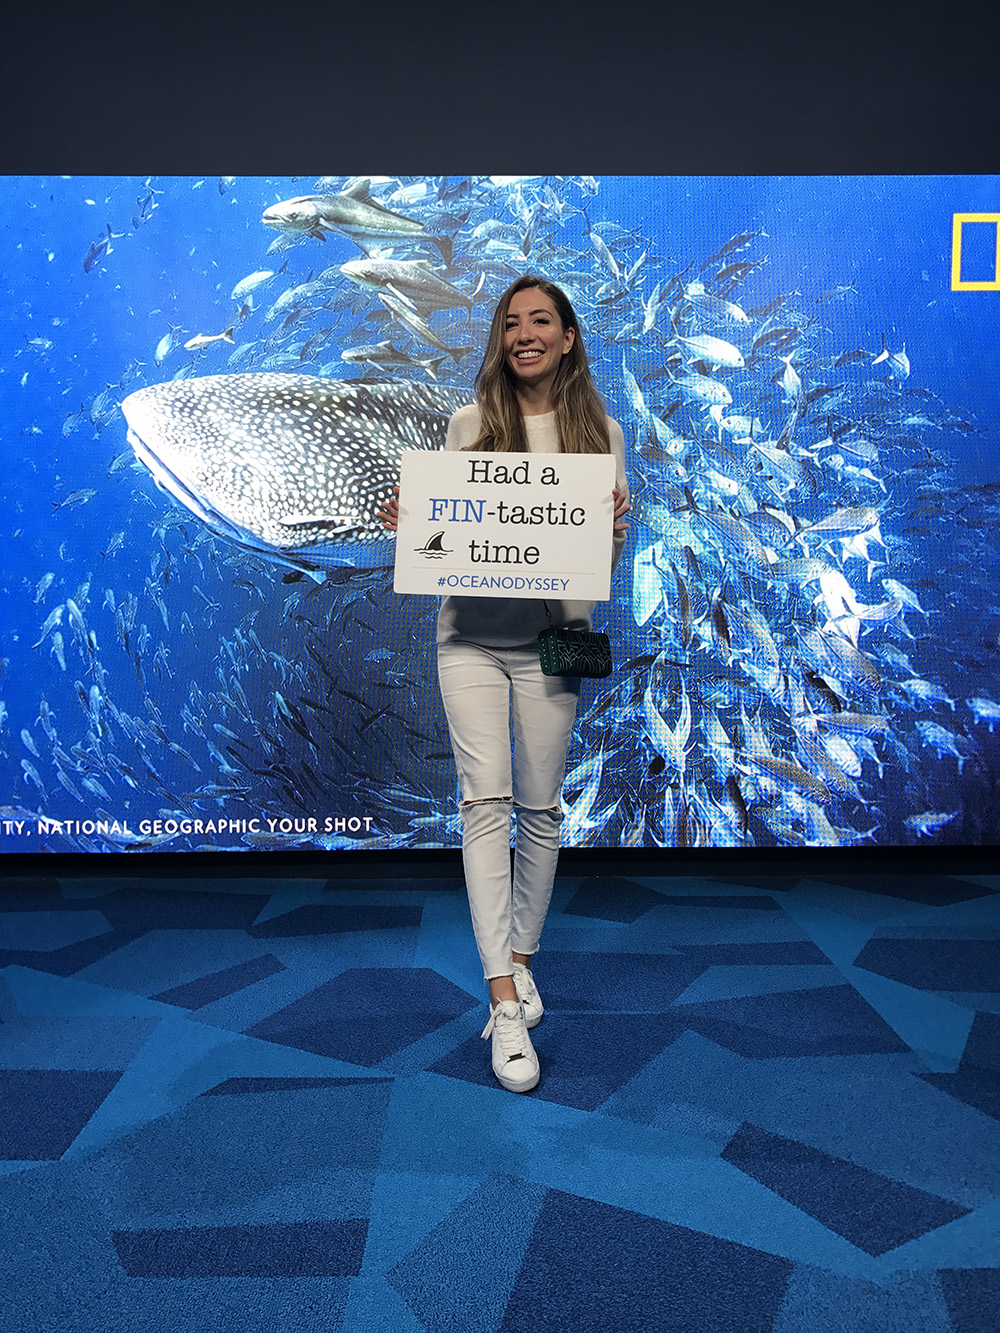 Had a fin-tastic time at NatGeo!